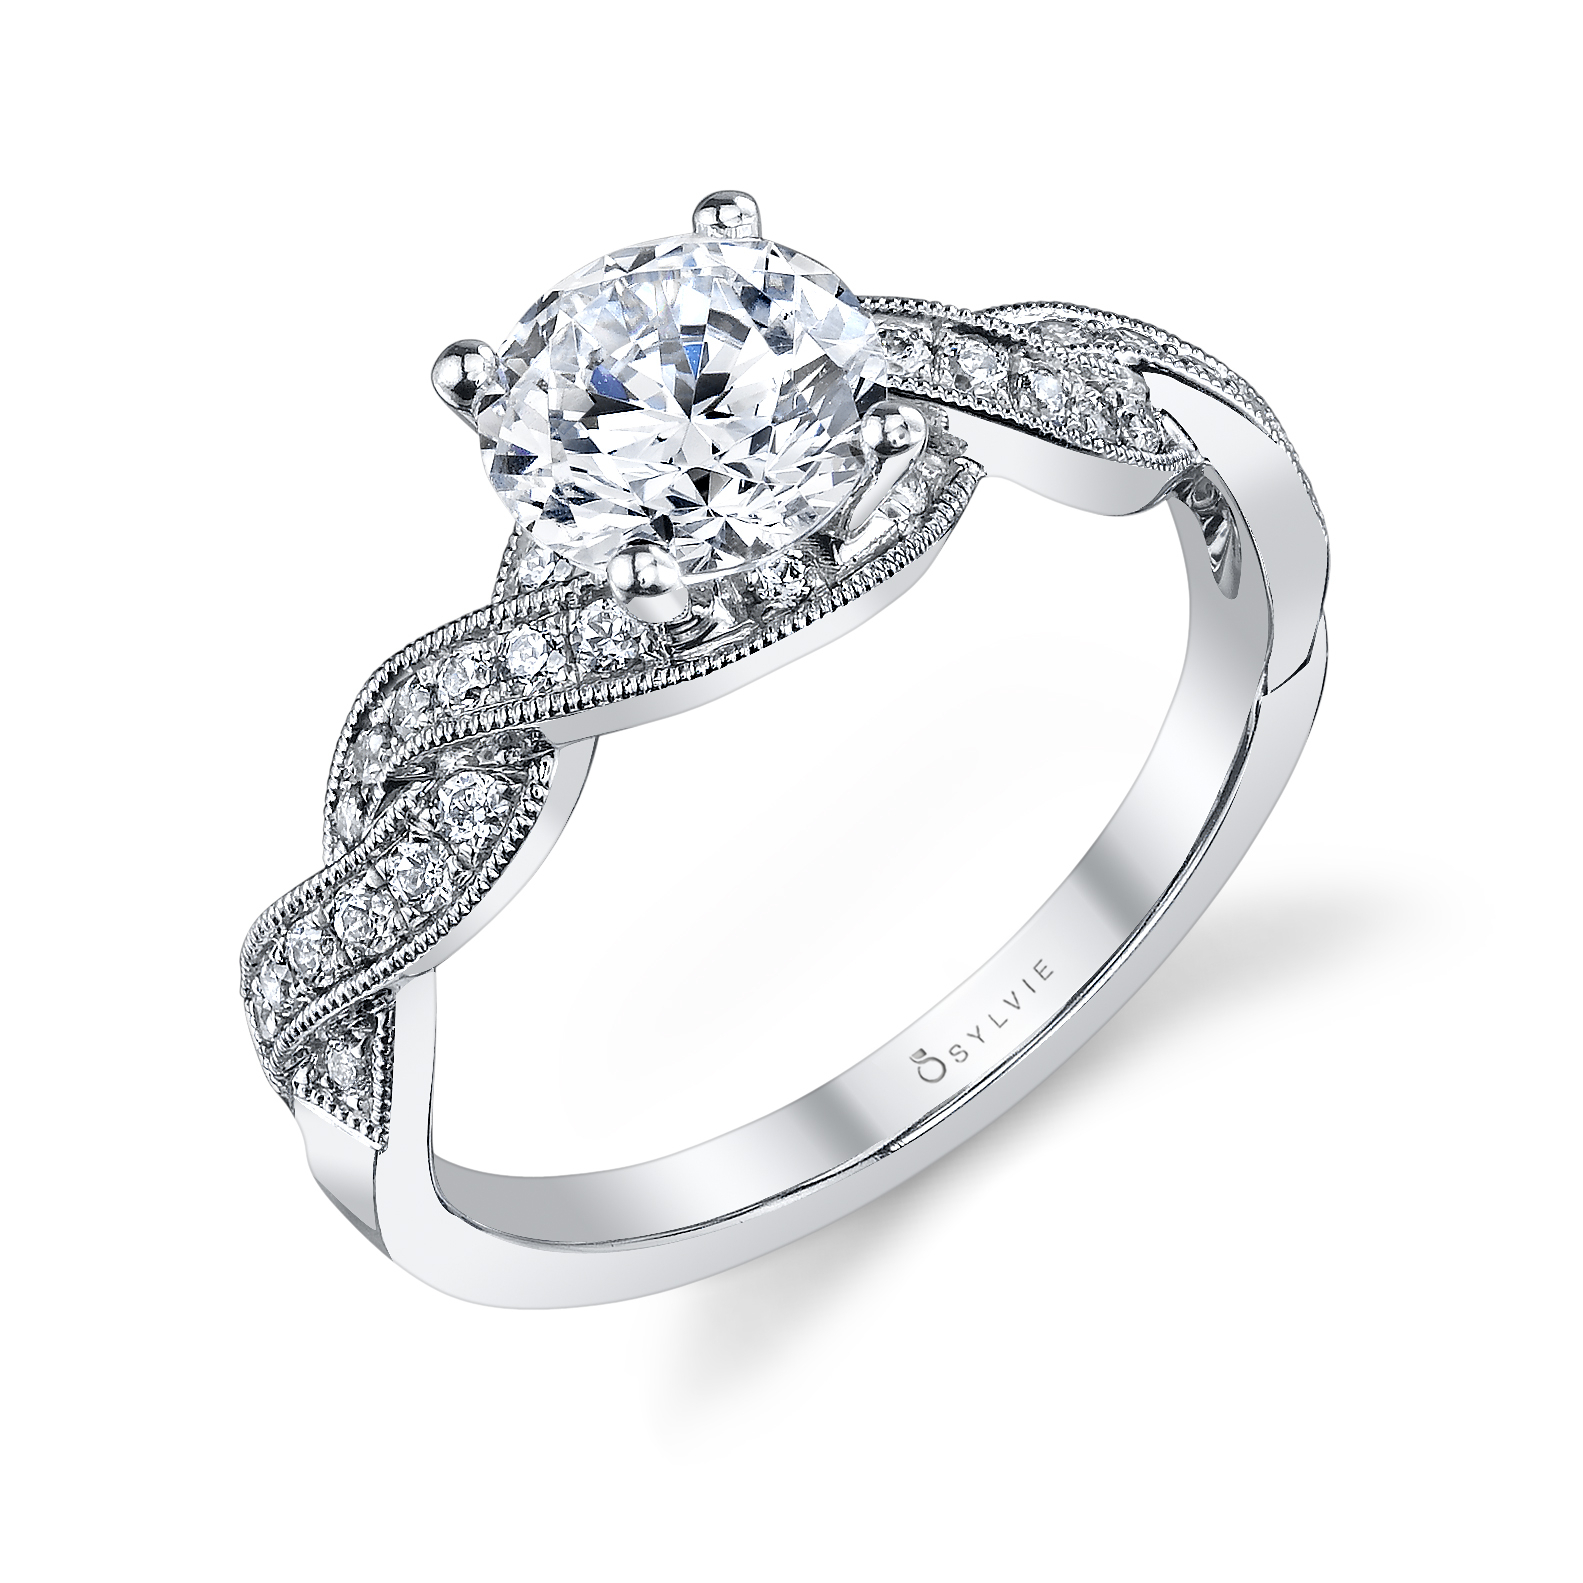 Criss Cross Shank Round Diamond Engagement Ring: Sylvie Collection For Most Up To Date Princess Cut Diamond Criss Cross Anniversary Bands In White Gold (View 9 of 25)